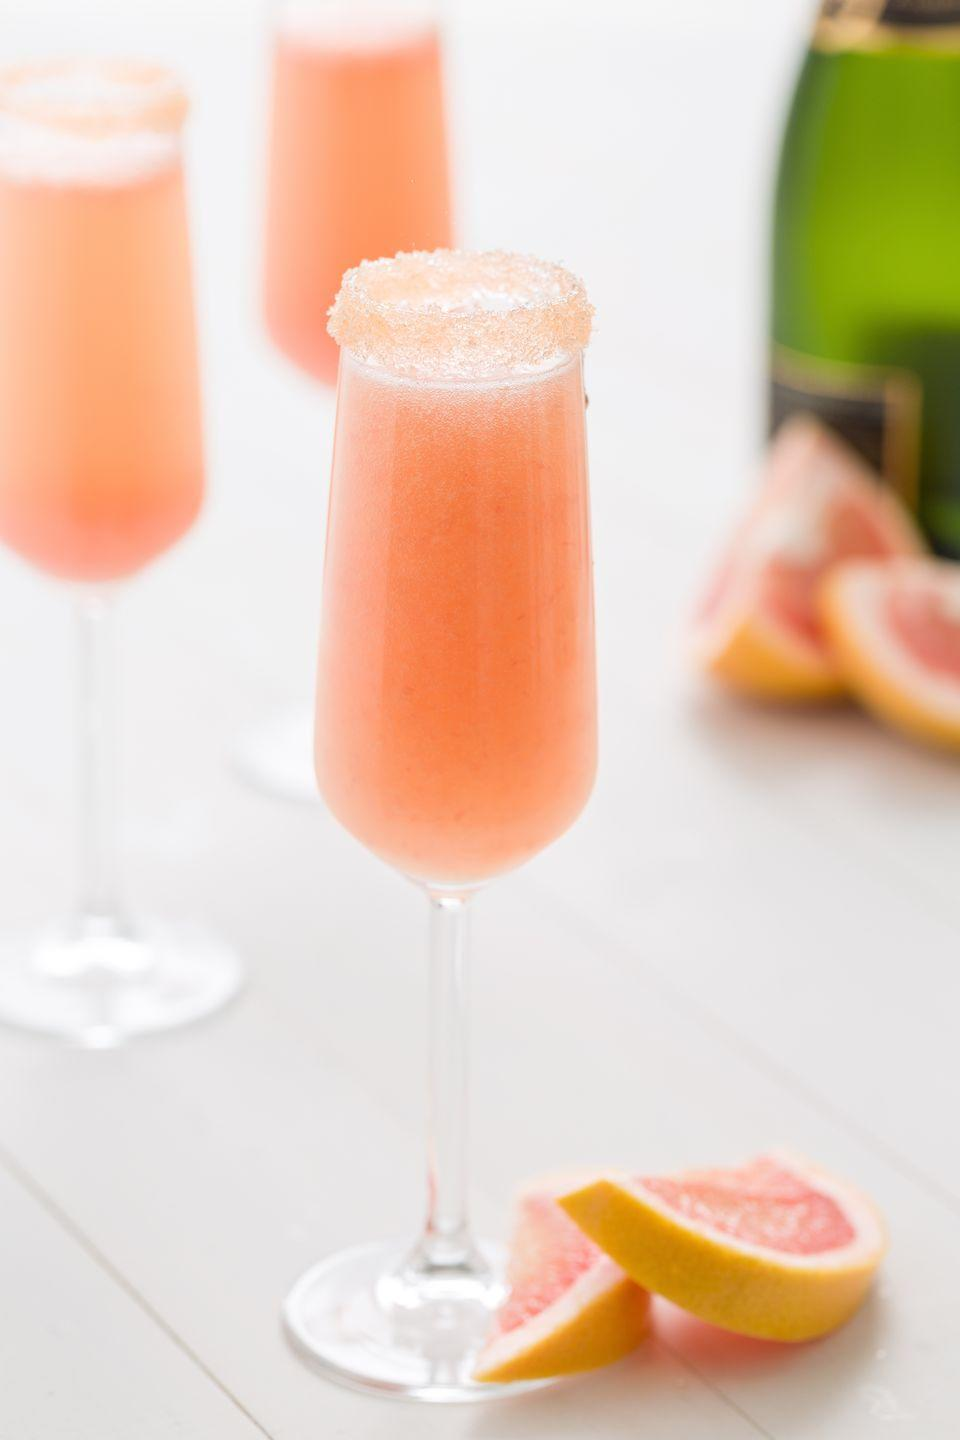 "<p>Fact: the winter citrus is served best with bubbly. This mimosa has a chic pastel rim from light pink sanding sugar.</p><p>Get the recipe from <a href=""https://www.delish.com/cooking/recipe-ideas/recipes/a46971/grapefruit-mimosas-recipe/"" rel=""nofollow noopener"" target=""_blank"" data-ylk=""slk:Delish"" class=""link rapid-noclick-resp"">Delish</a>.</p>"